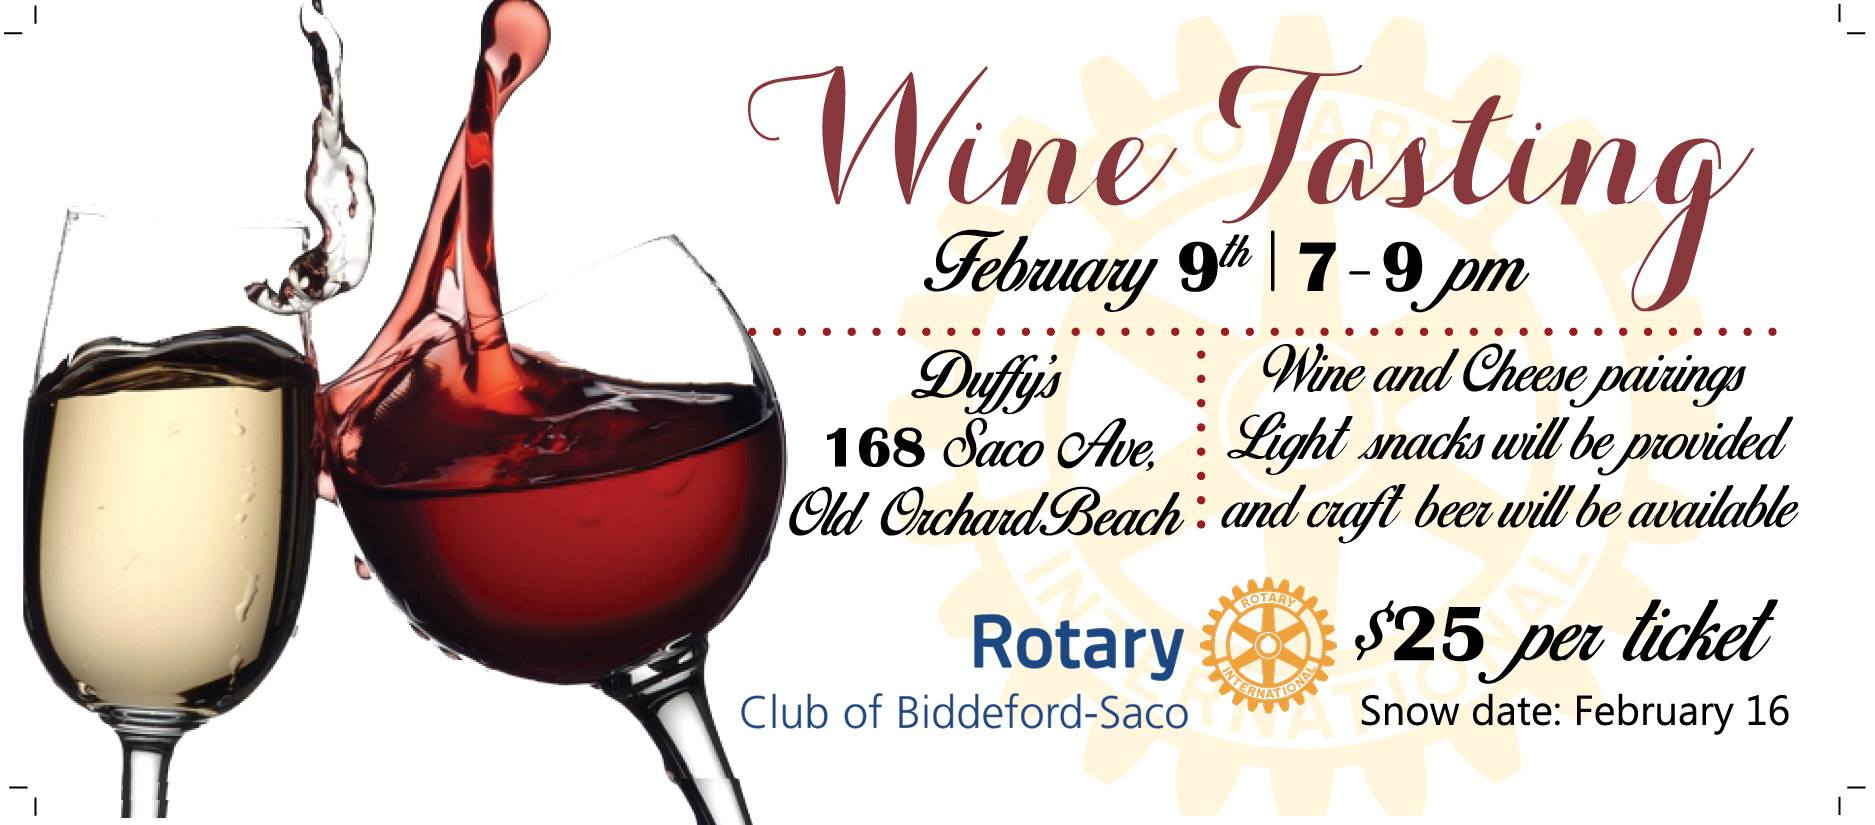 Everyone  Please mark your calendars for the Wine Tasting on Feb. 9 from  7 00 to 9 00 PM at Duffy s. We have a new location this year and the format  will be ... 7bf7ad83a